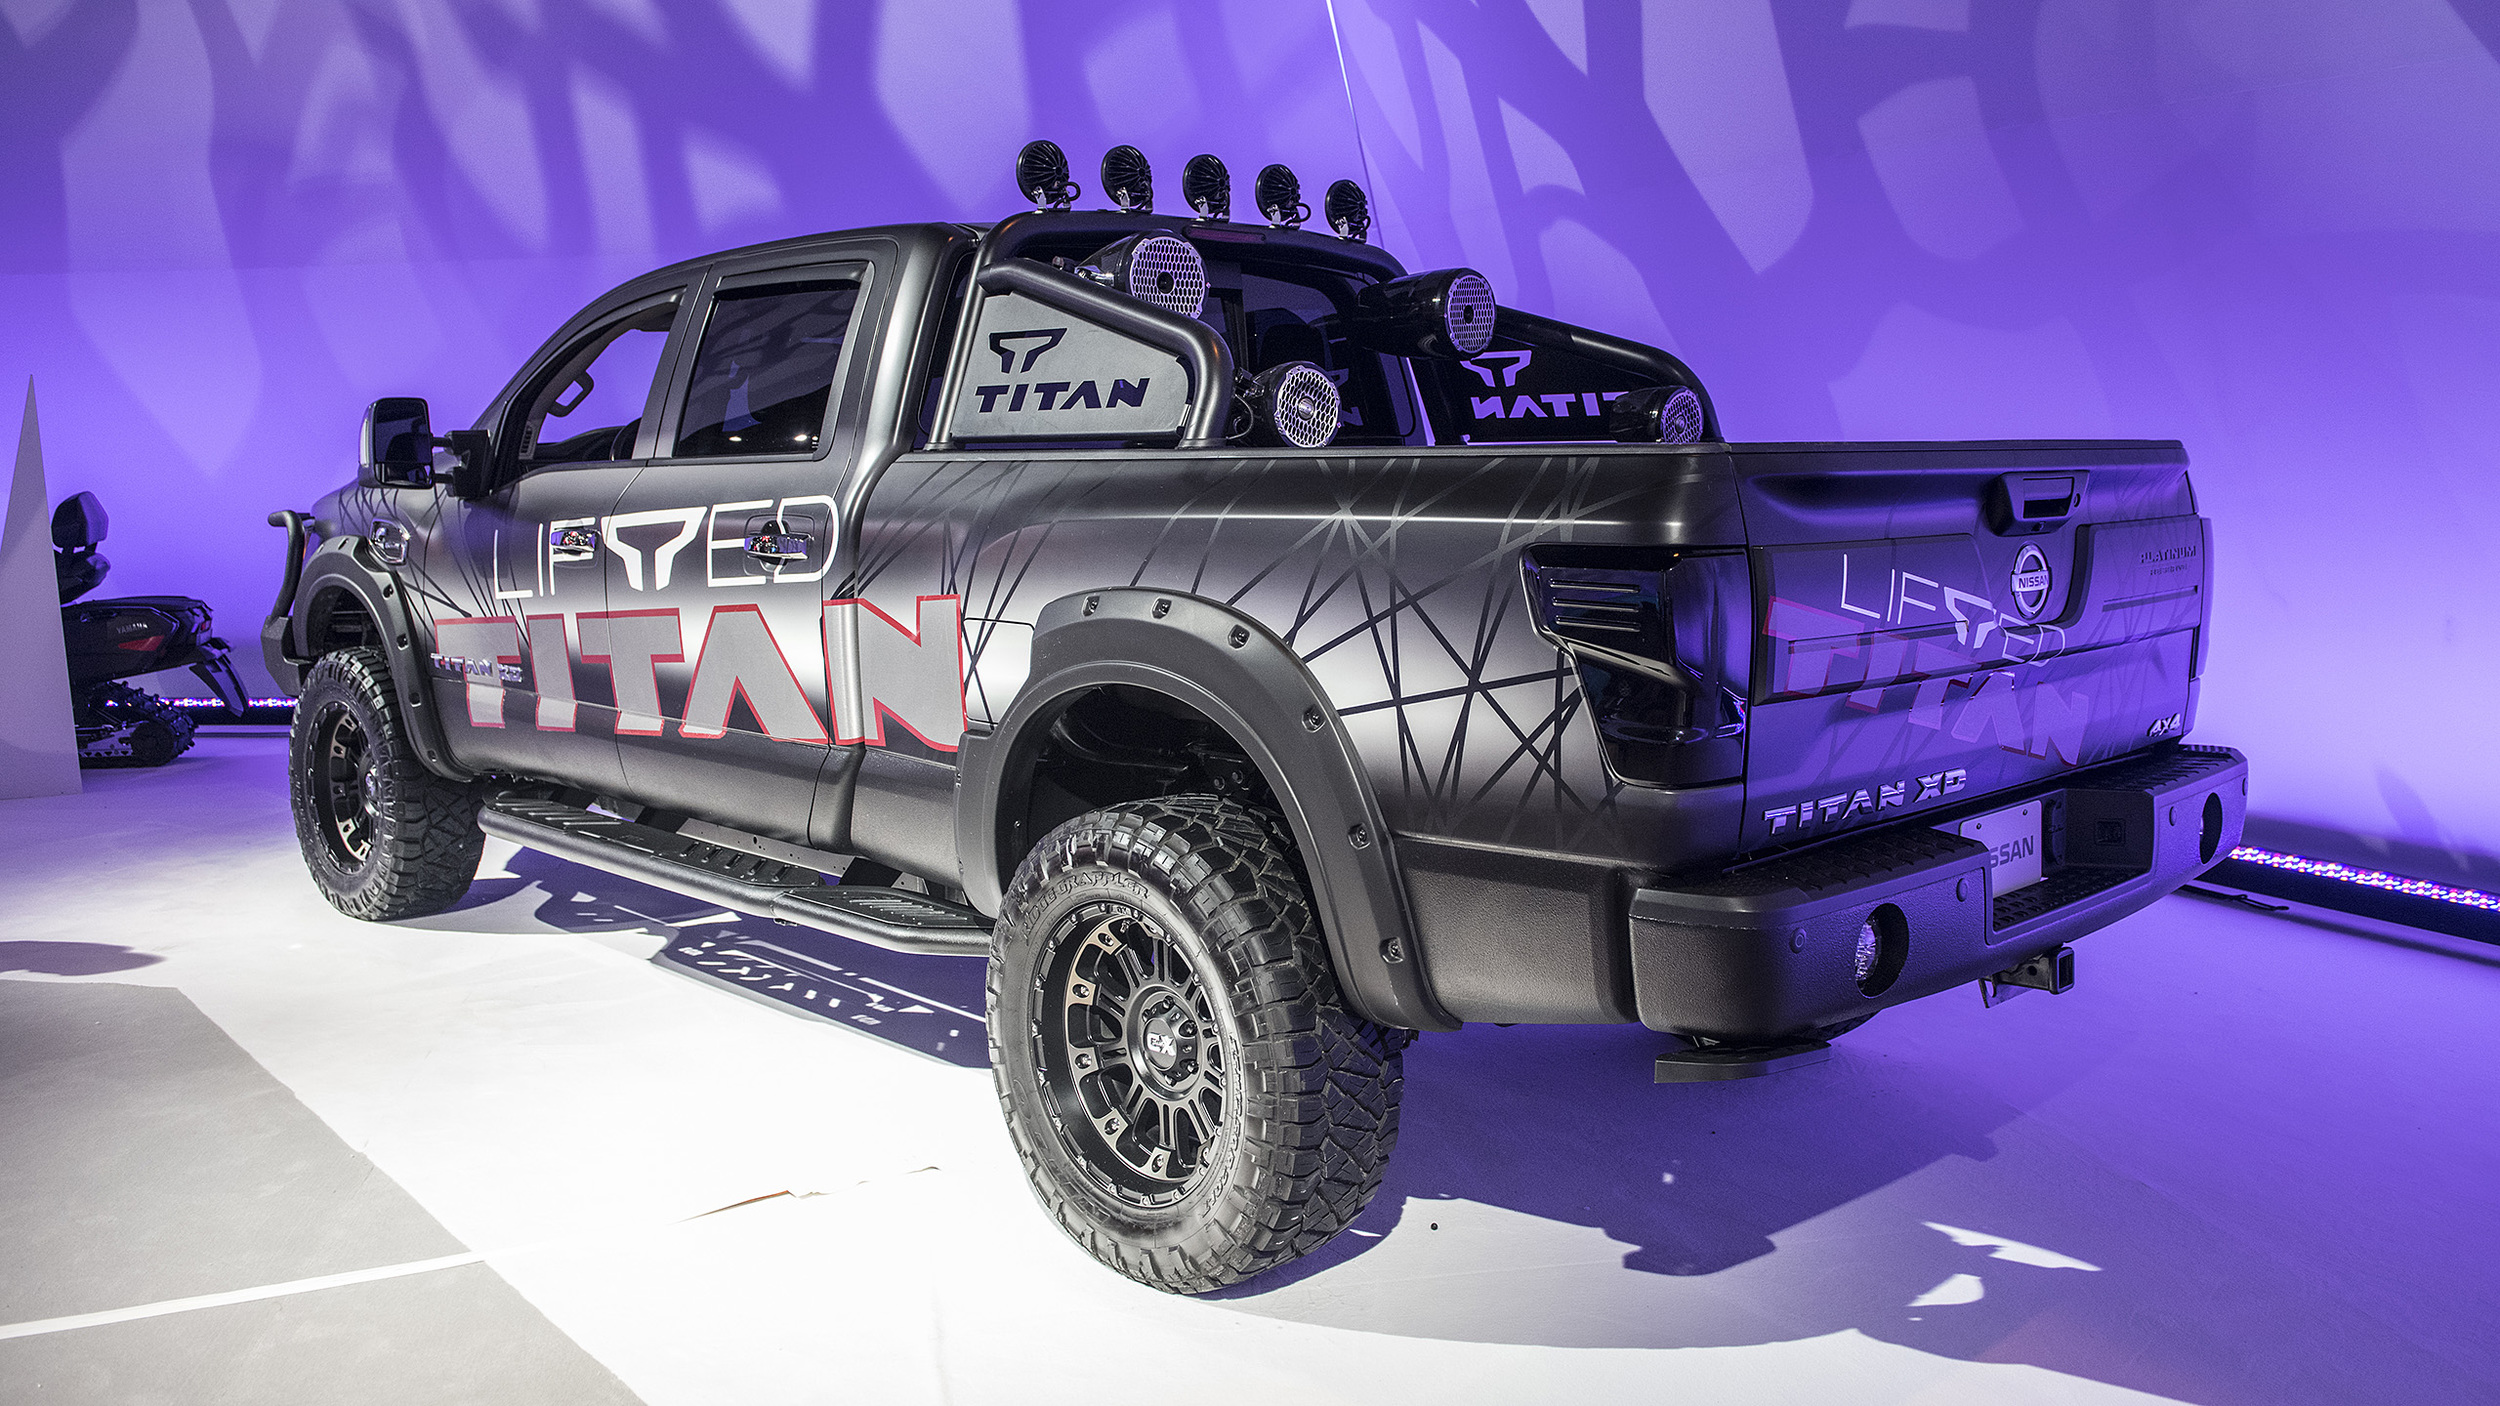 Lifted Titan Xd >> Nissan Titan and Titan XD now available with factory-authorized lift kit | Autoblog